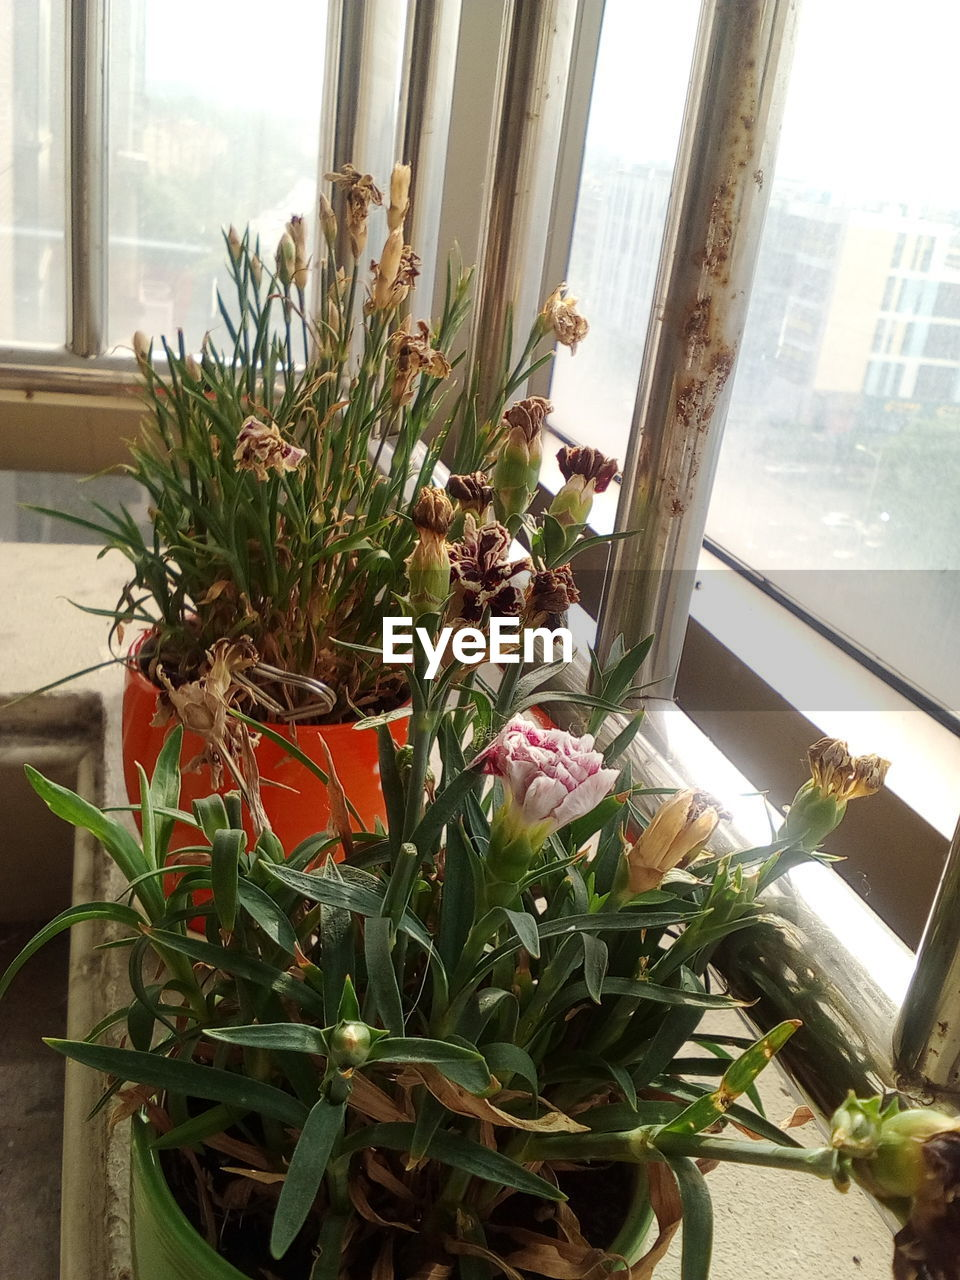 plant, window, flower, flowering plant, indoors, nature, growth, no people, freshness, day, potted plant, glass - material, beauty in nature, home interior, fragility, decoration, plant part, petal, close-up, vulnerability, flower head, flower pot, flower arrangement, bouquet, houseplant